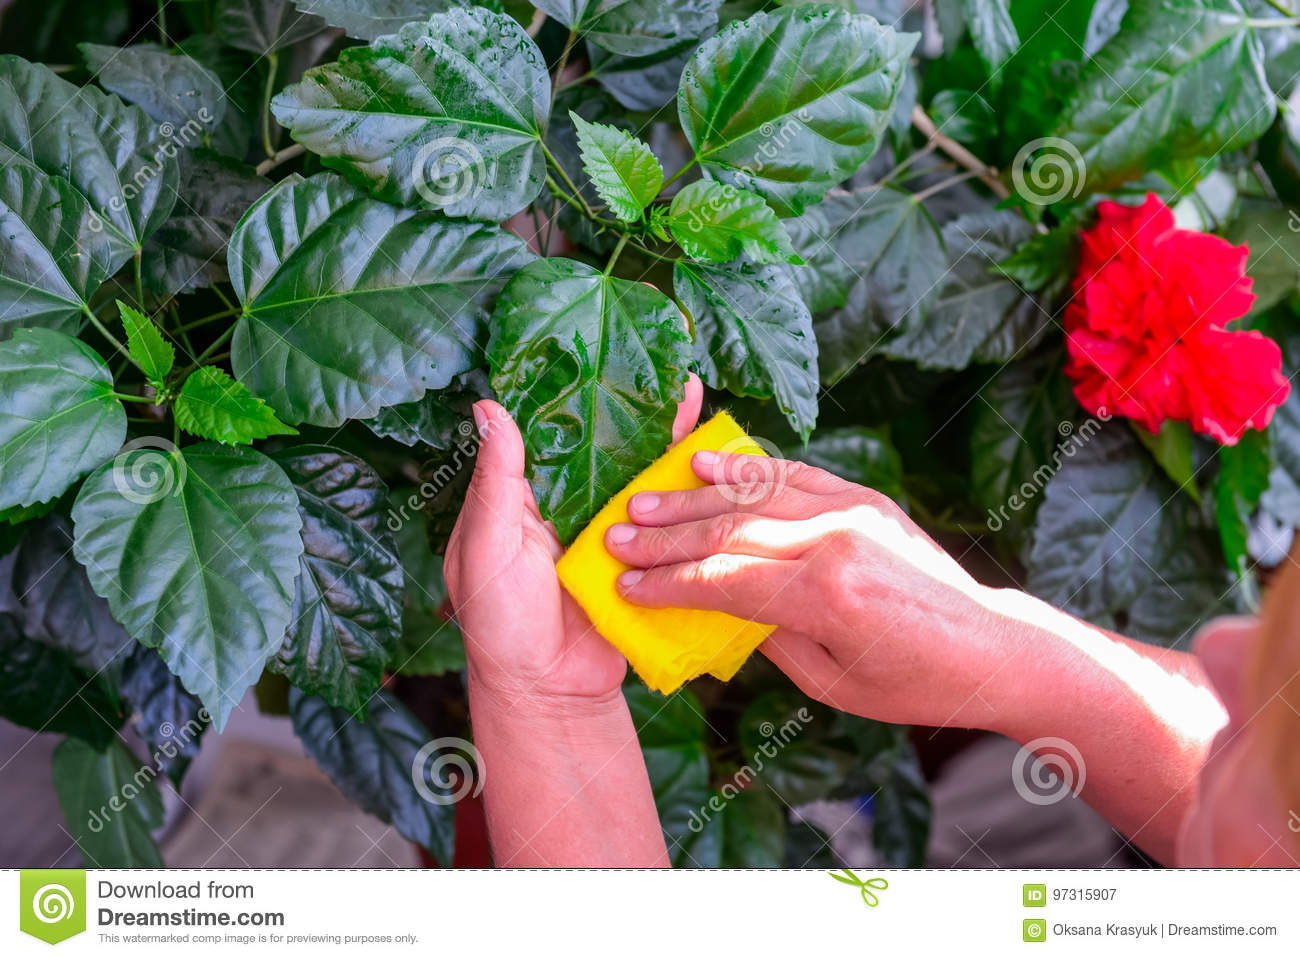 Household Concept Of Takes Care Of Indoor Plants Adult Female Hands